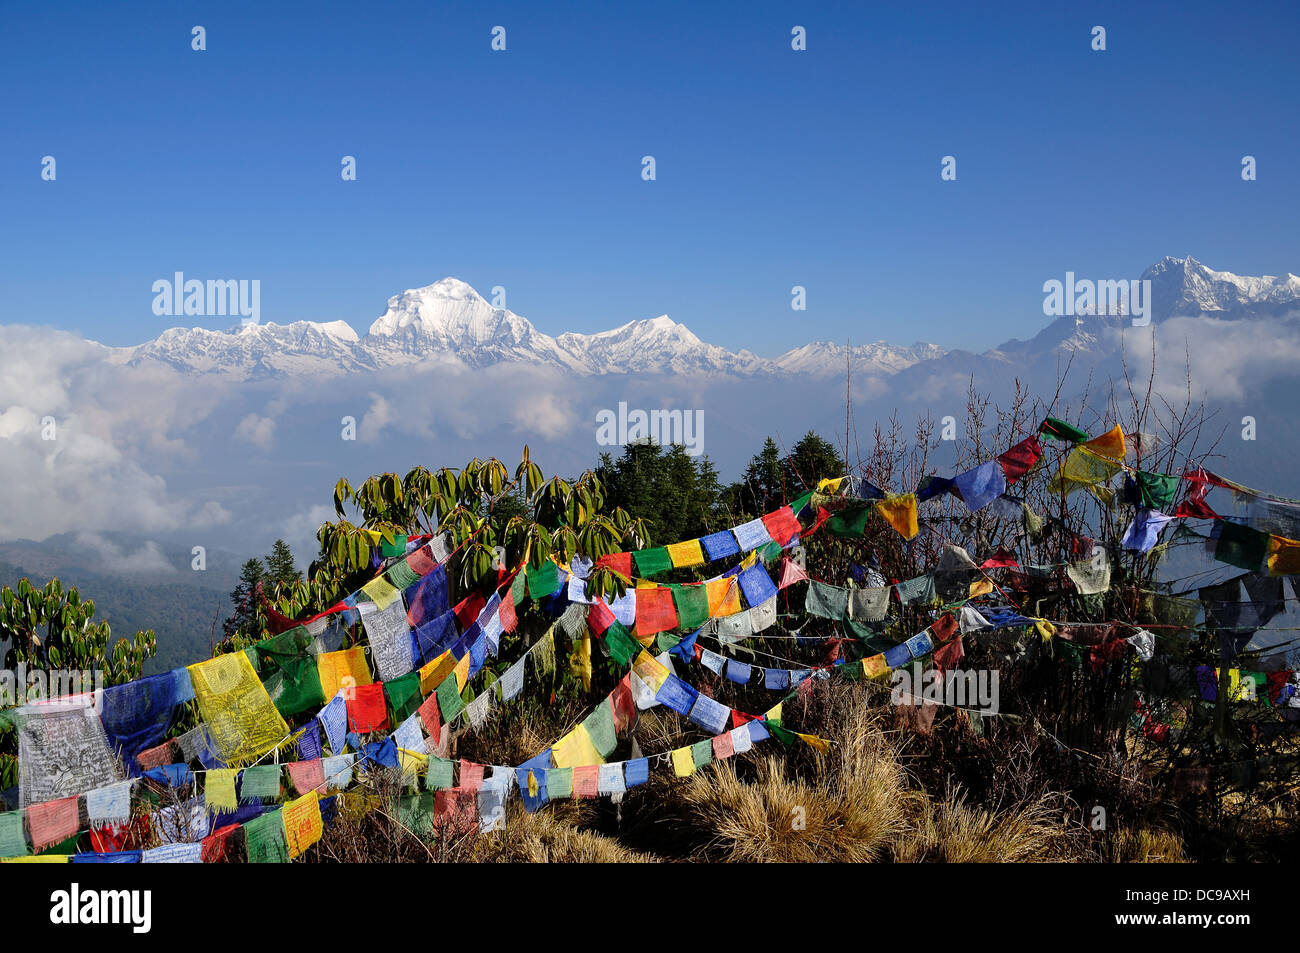 Annapurna Mountain Range View and Praying Flags With Blue Sky, Nepal. - Stock Image